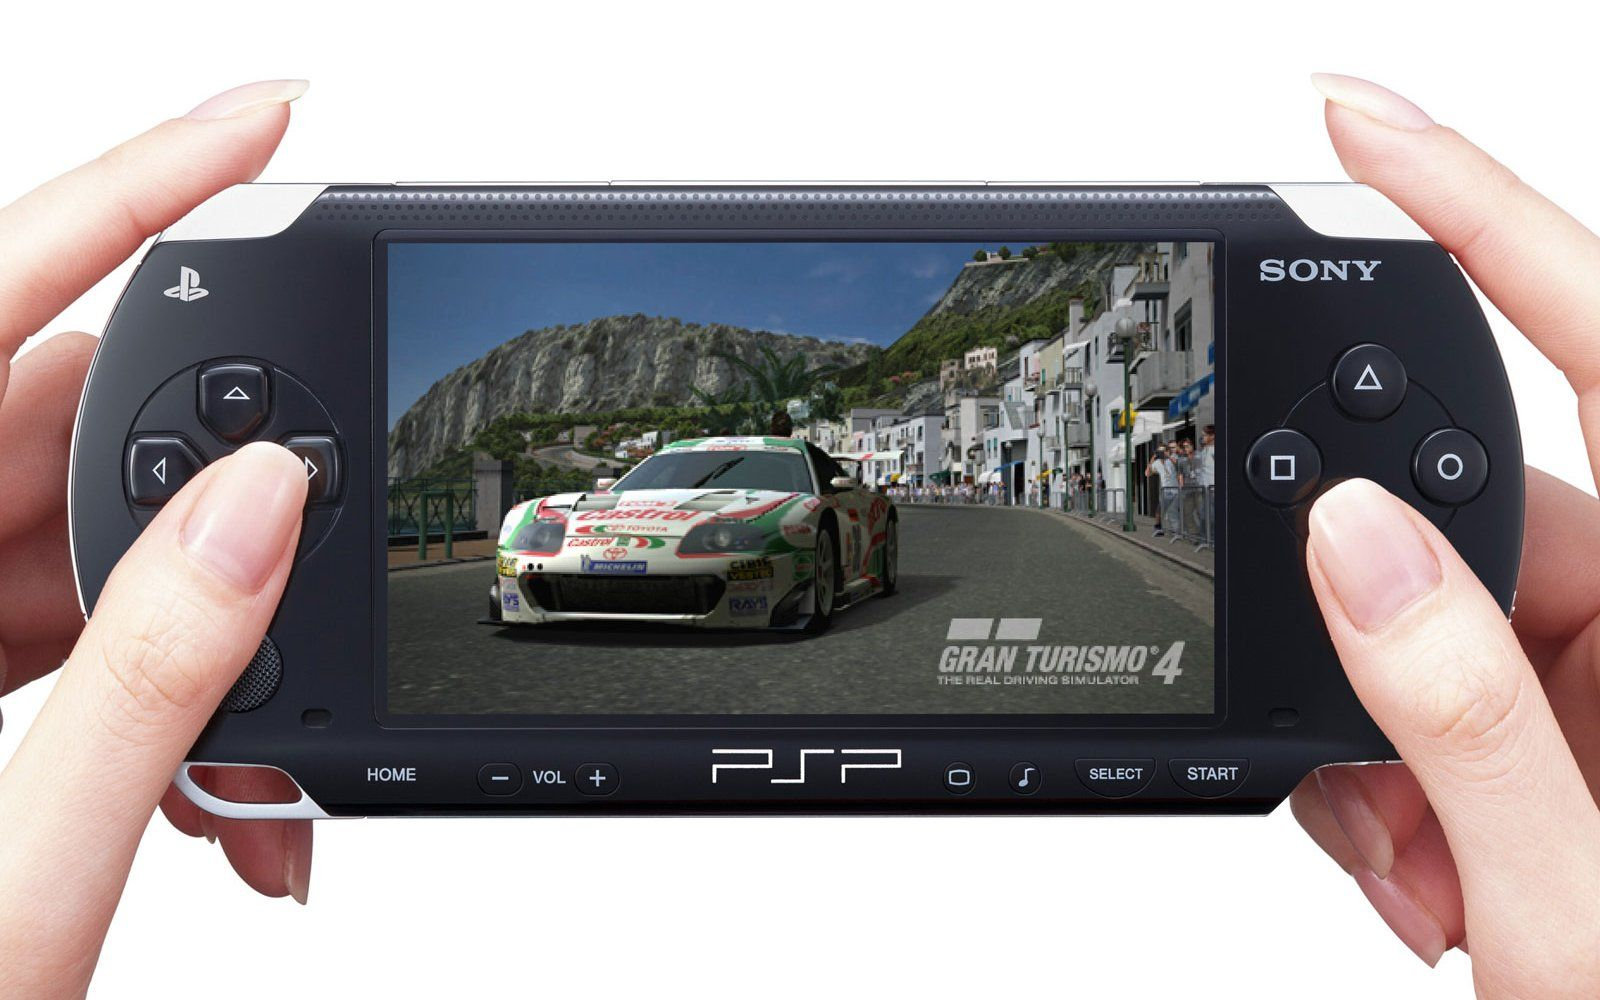 It's the end of an era, as Sony closes the North American PSP store